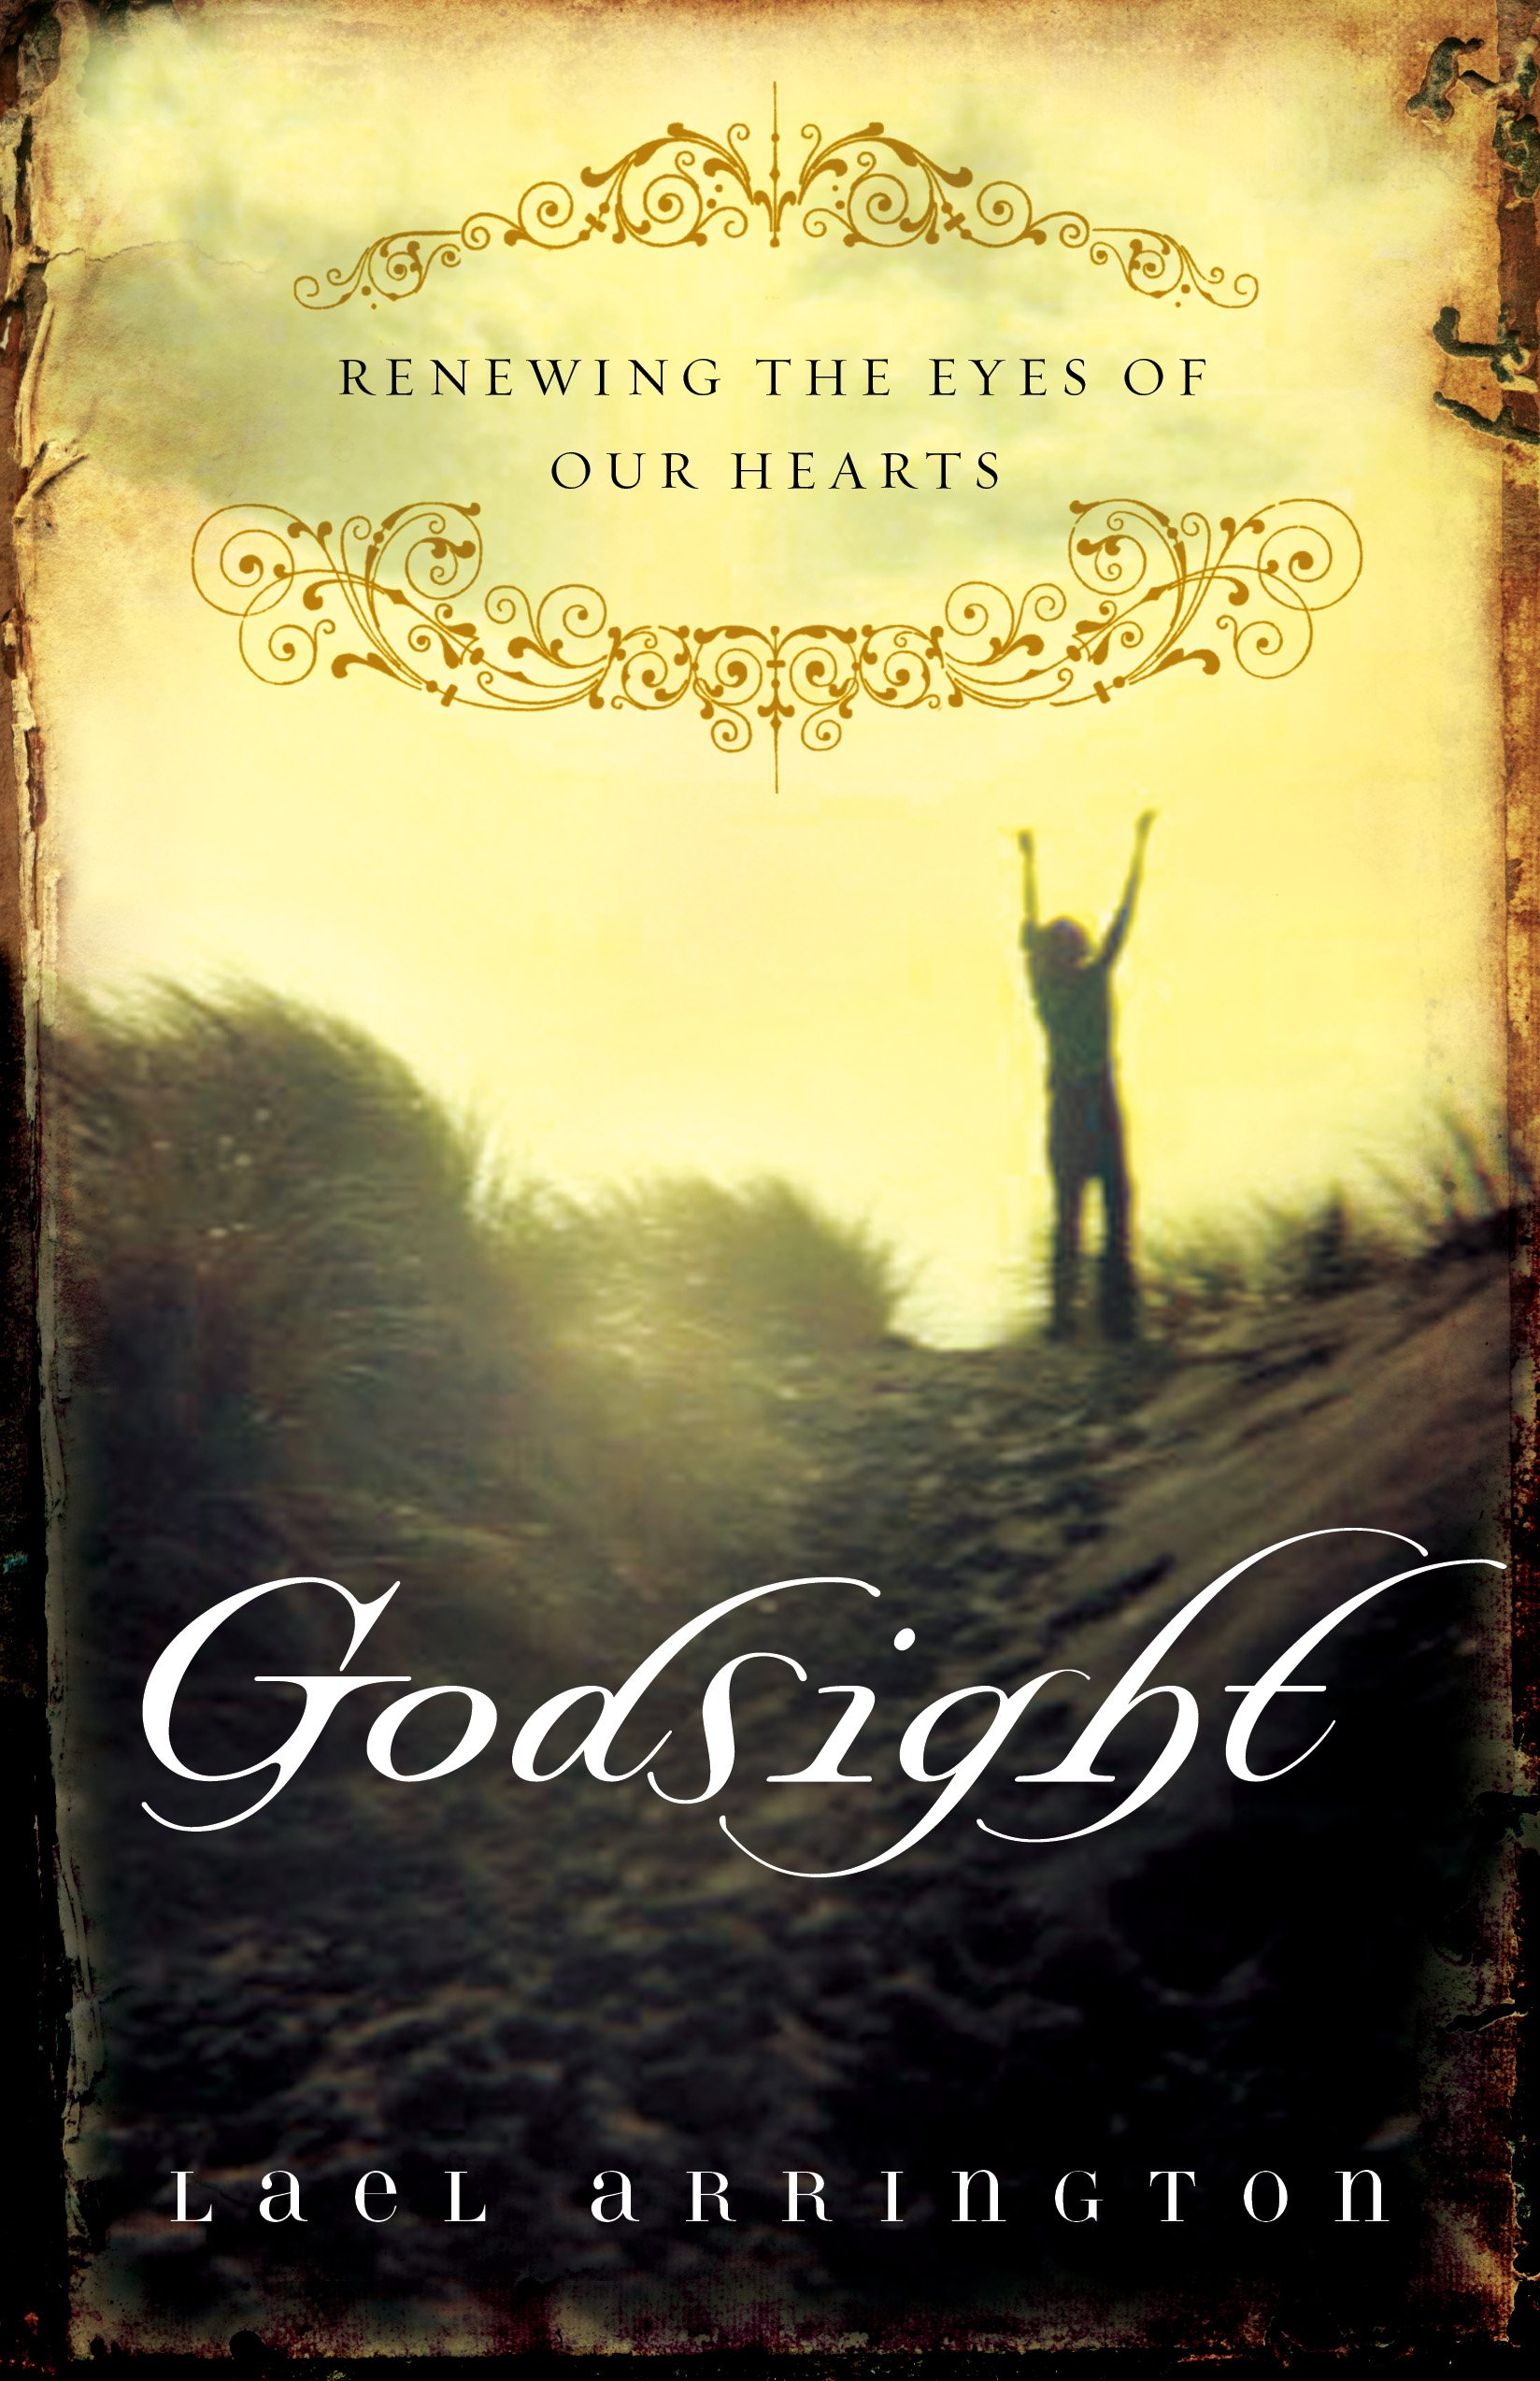 Godsight: Renewing the Eyes of Our Hearts pdf